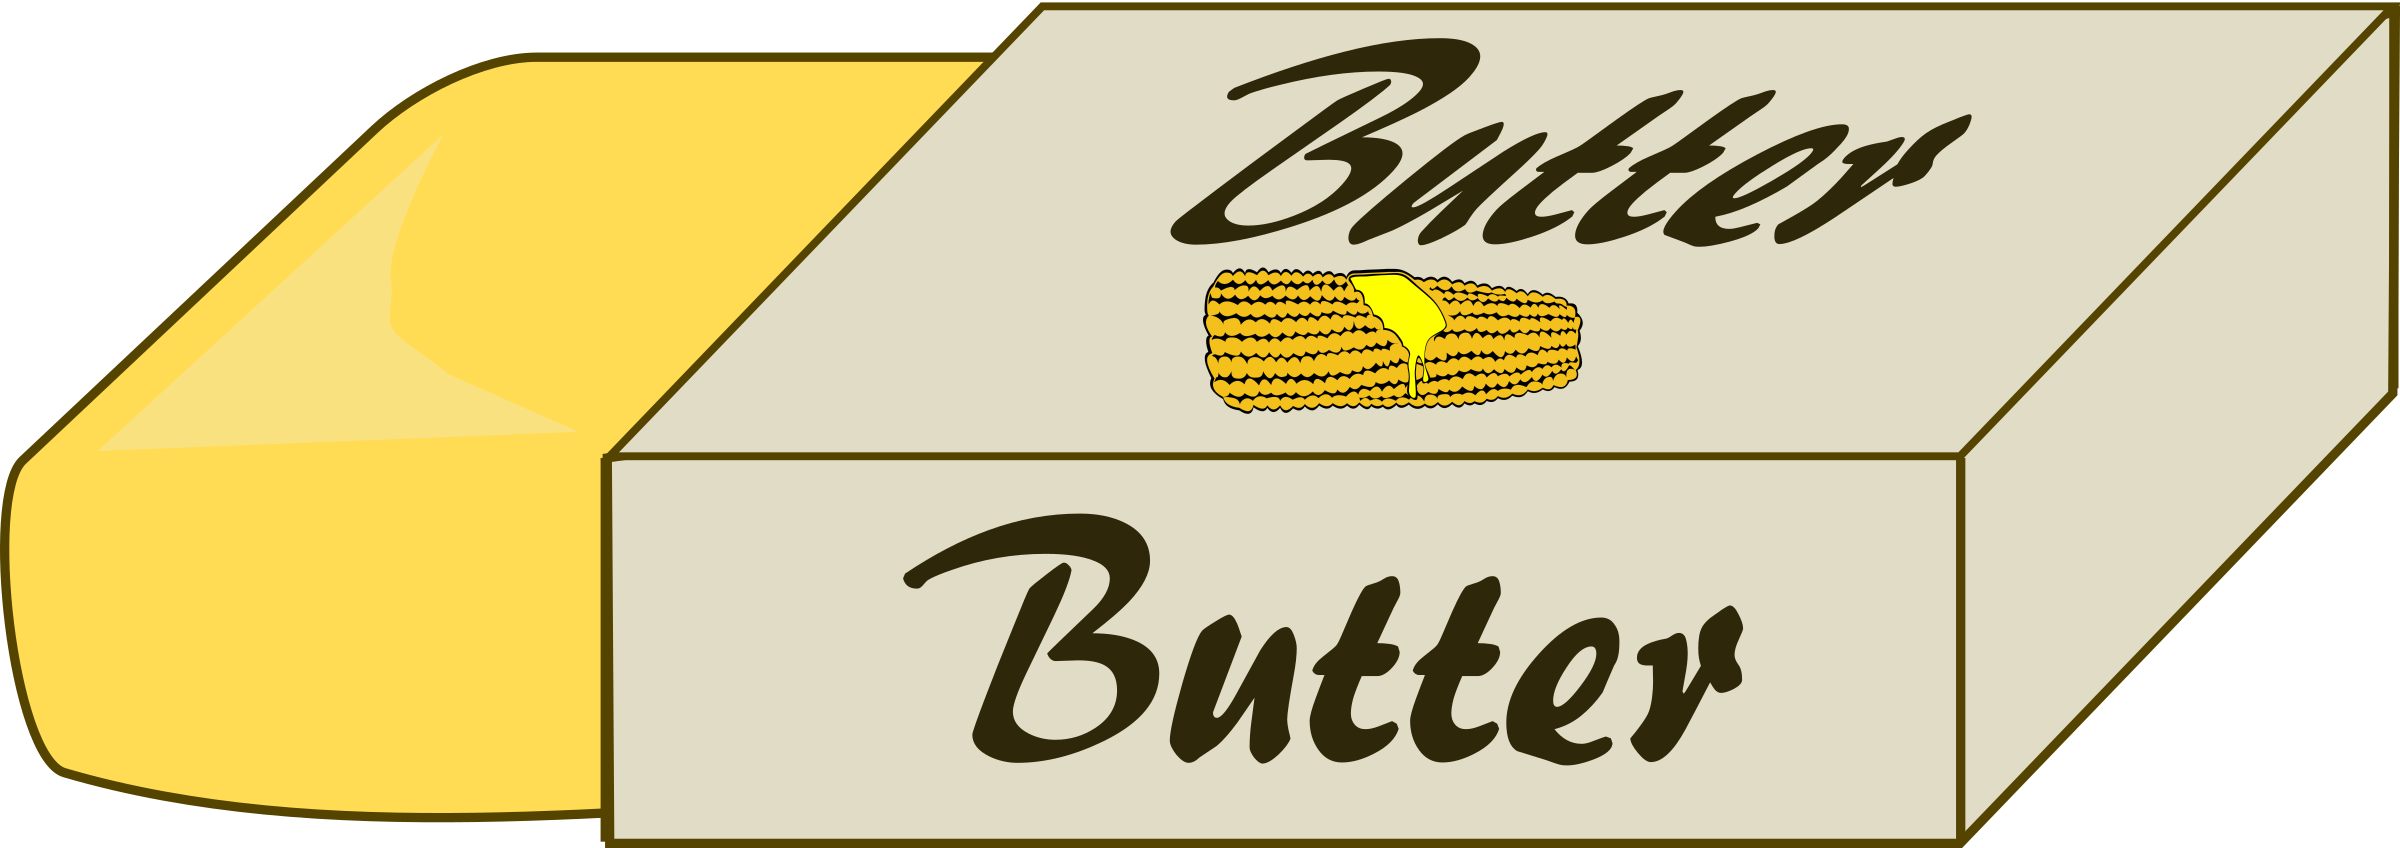 Pack of Butter by j4p4n